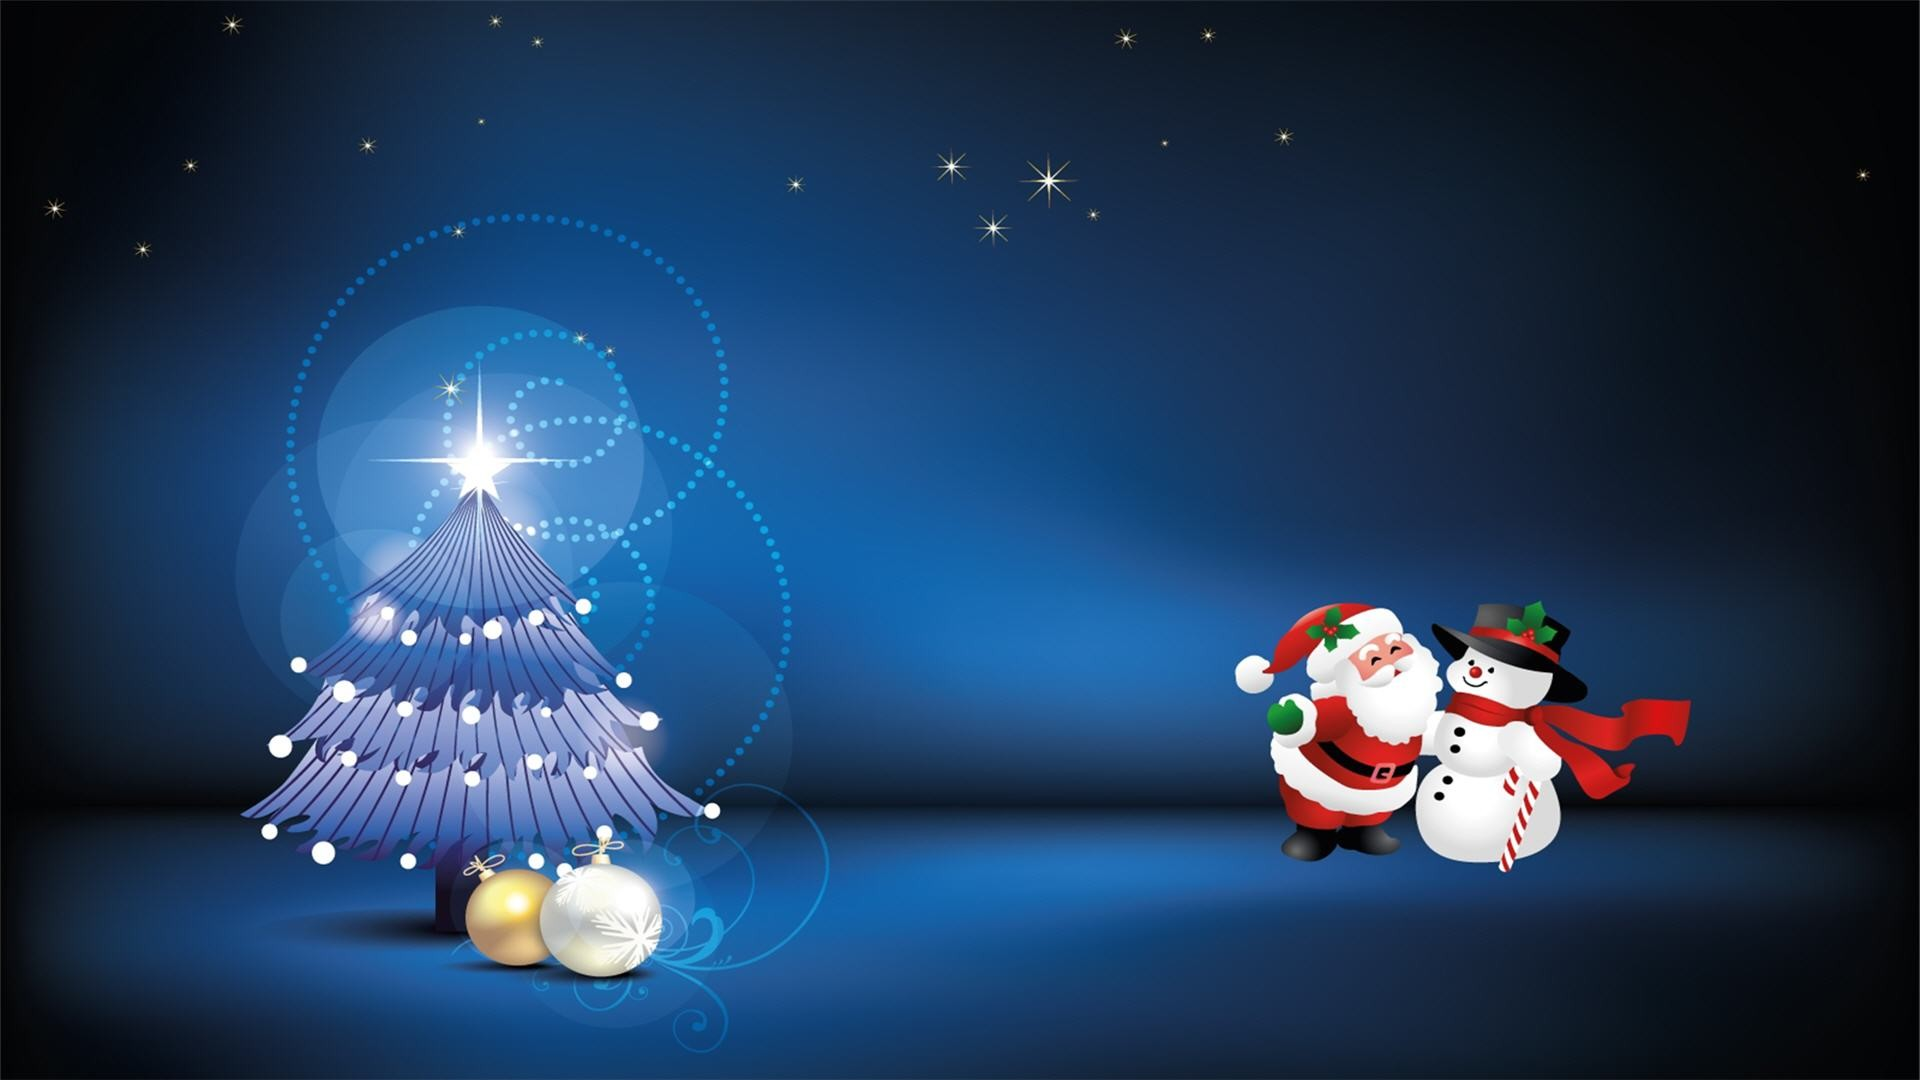 Cute Snoopy Wallpapers Christmas Cartoon Wallpaper 62 Images